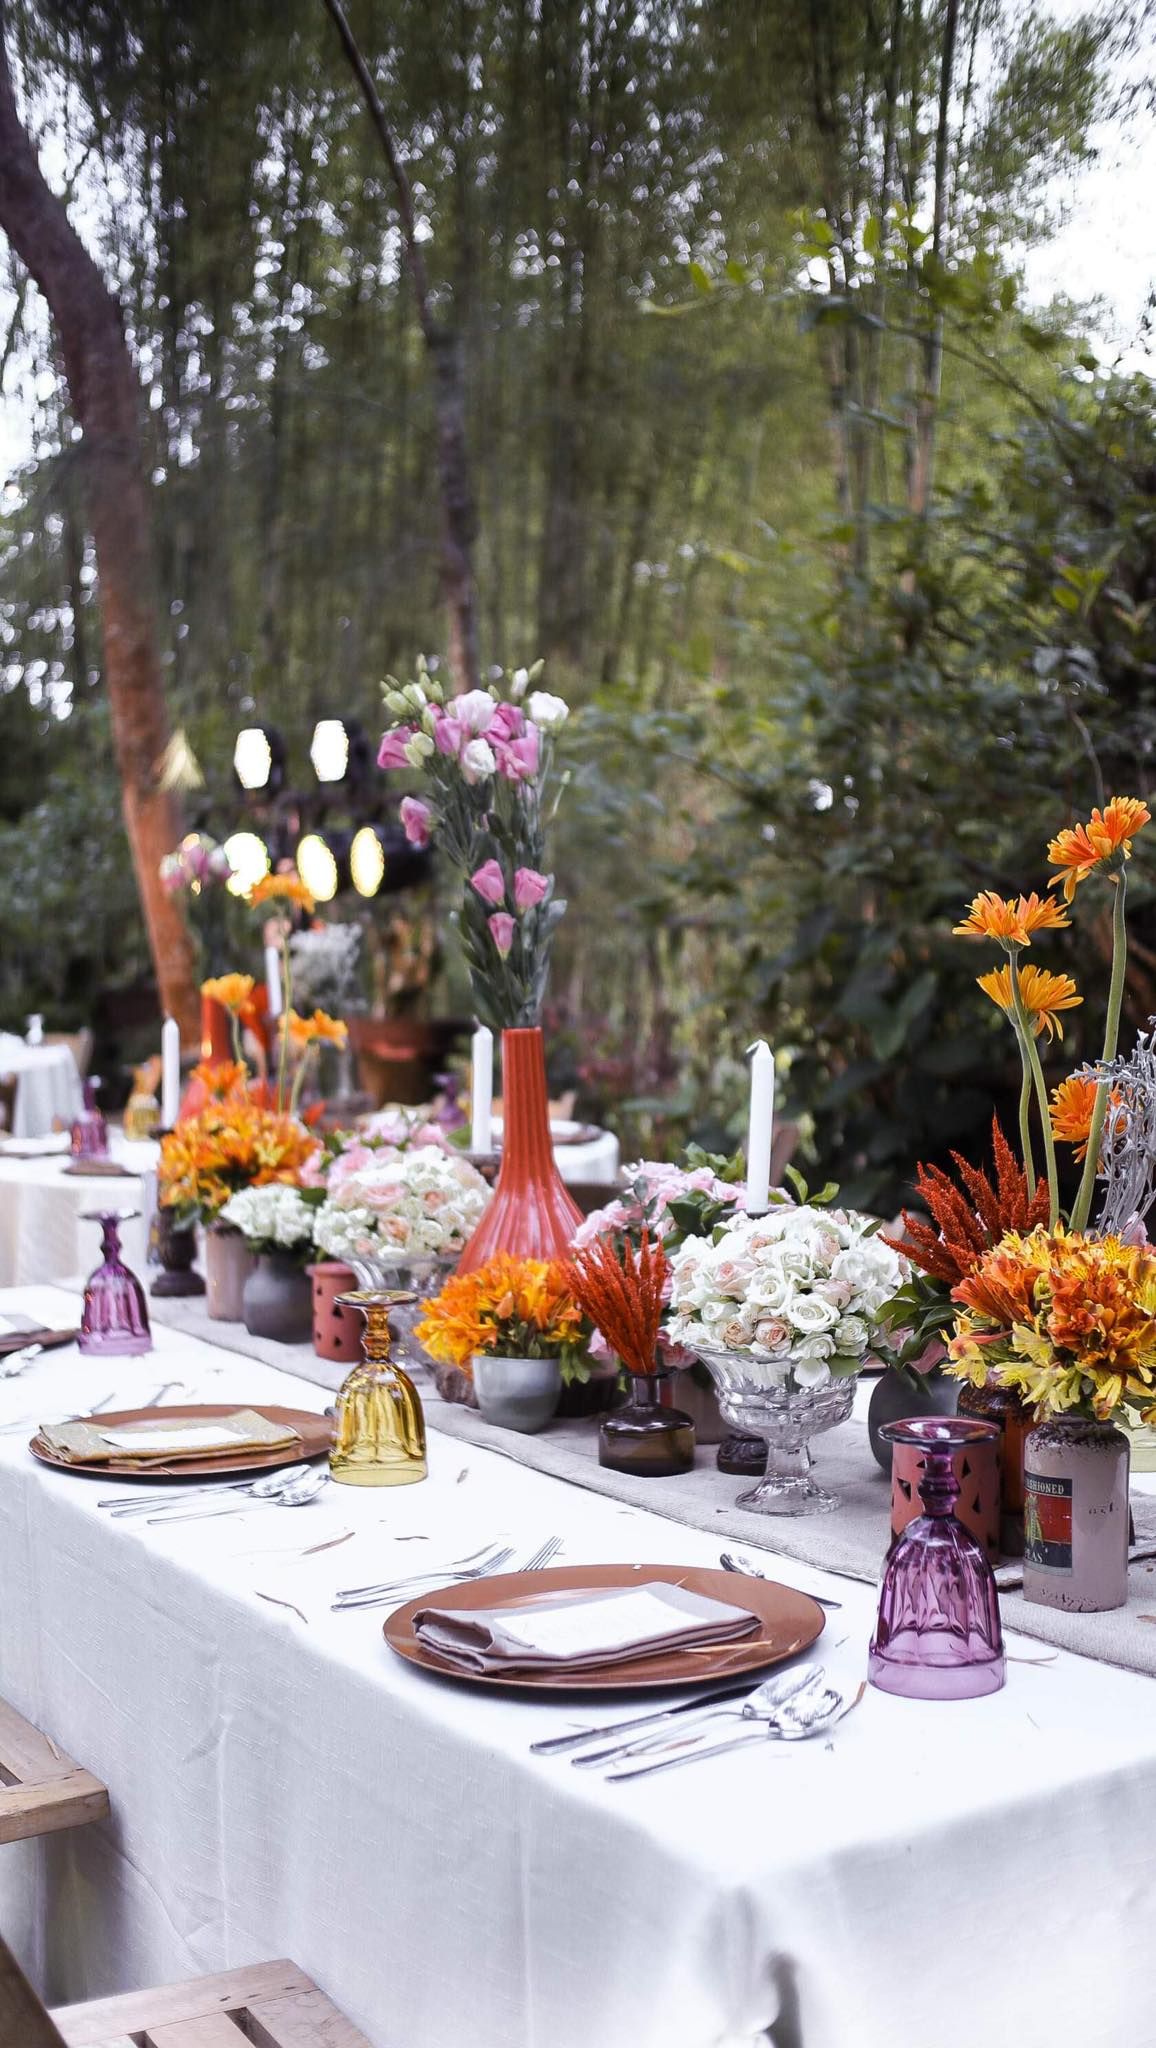 Town's Delight Catering & Events at Le Jardin Rosella